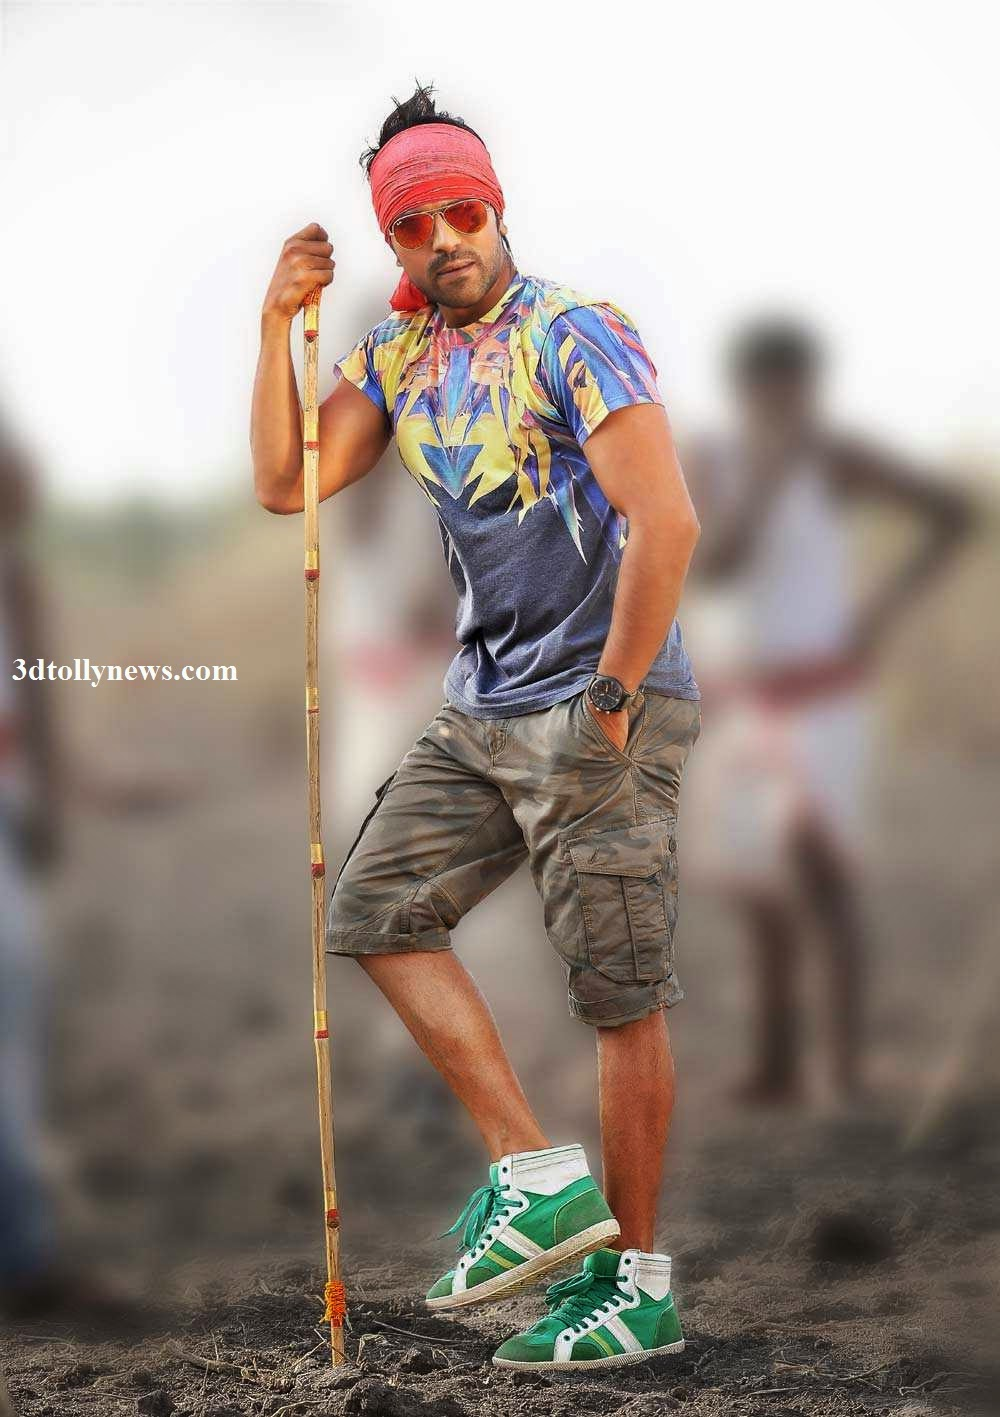 Ram-charan-teja-new-look